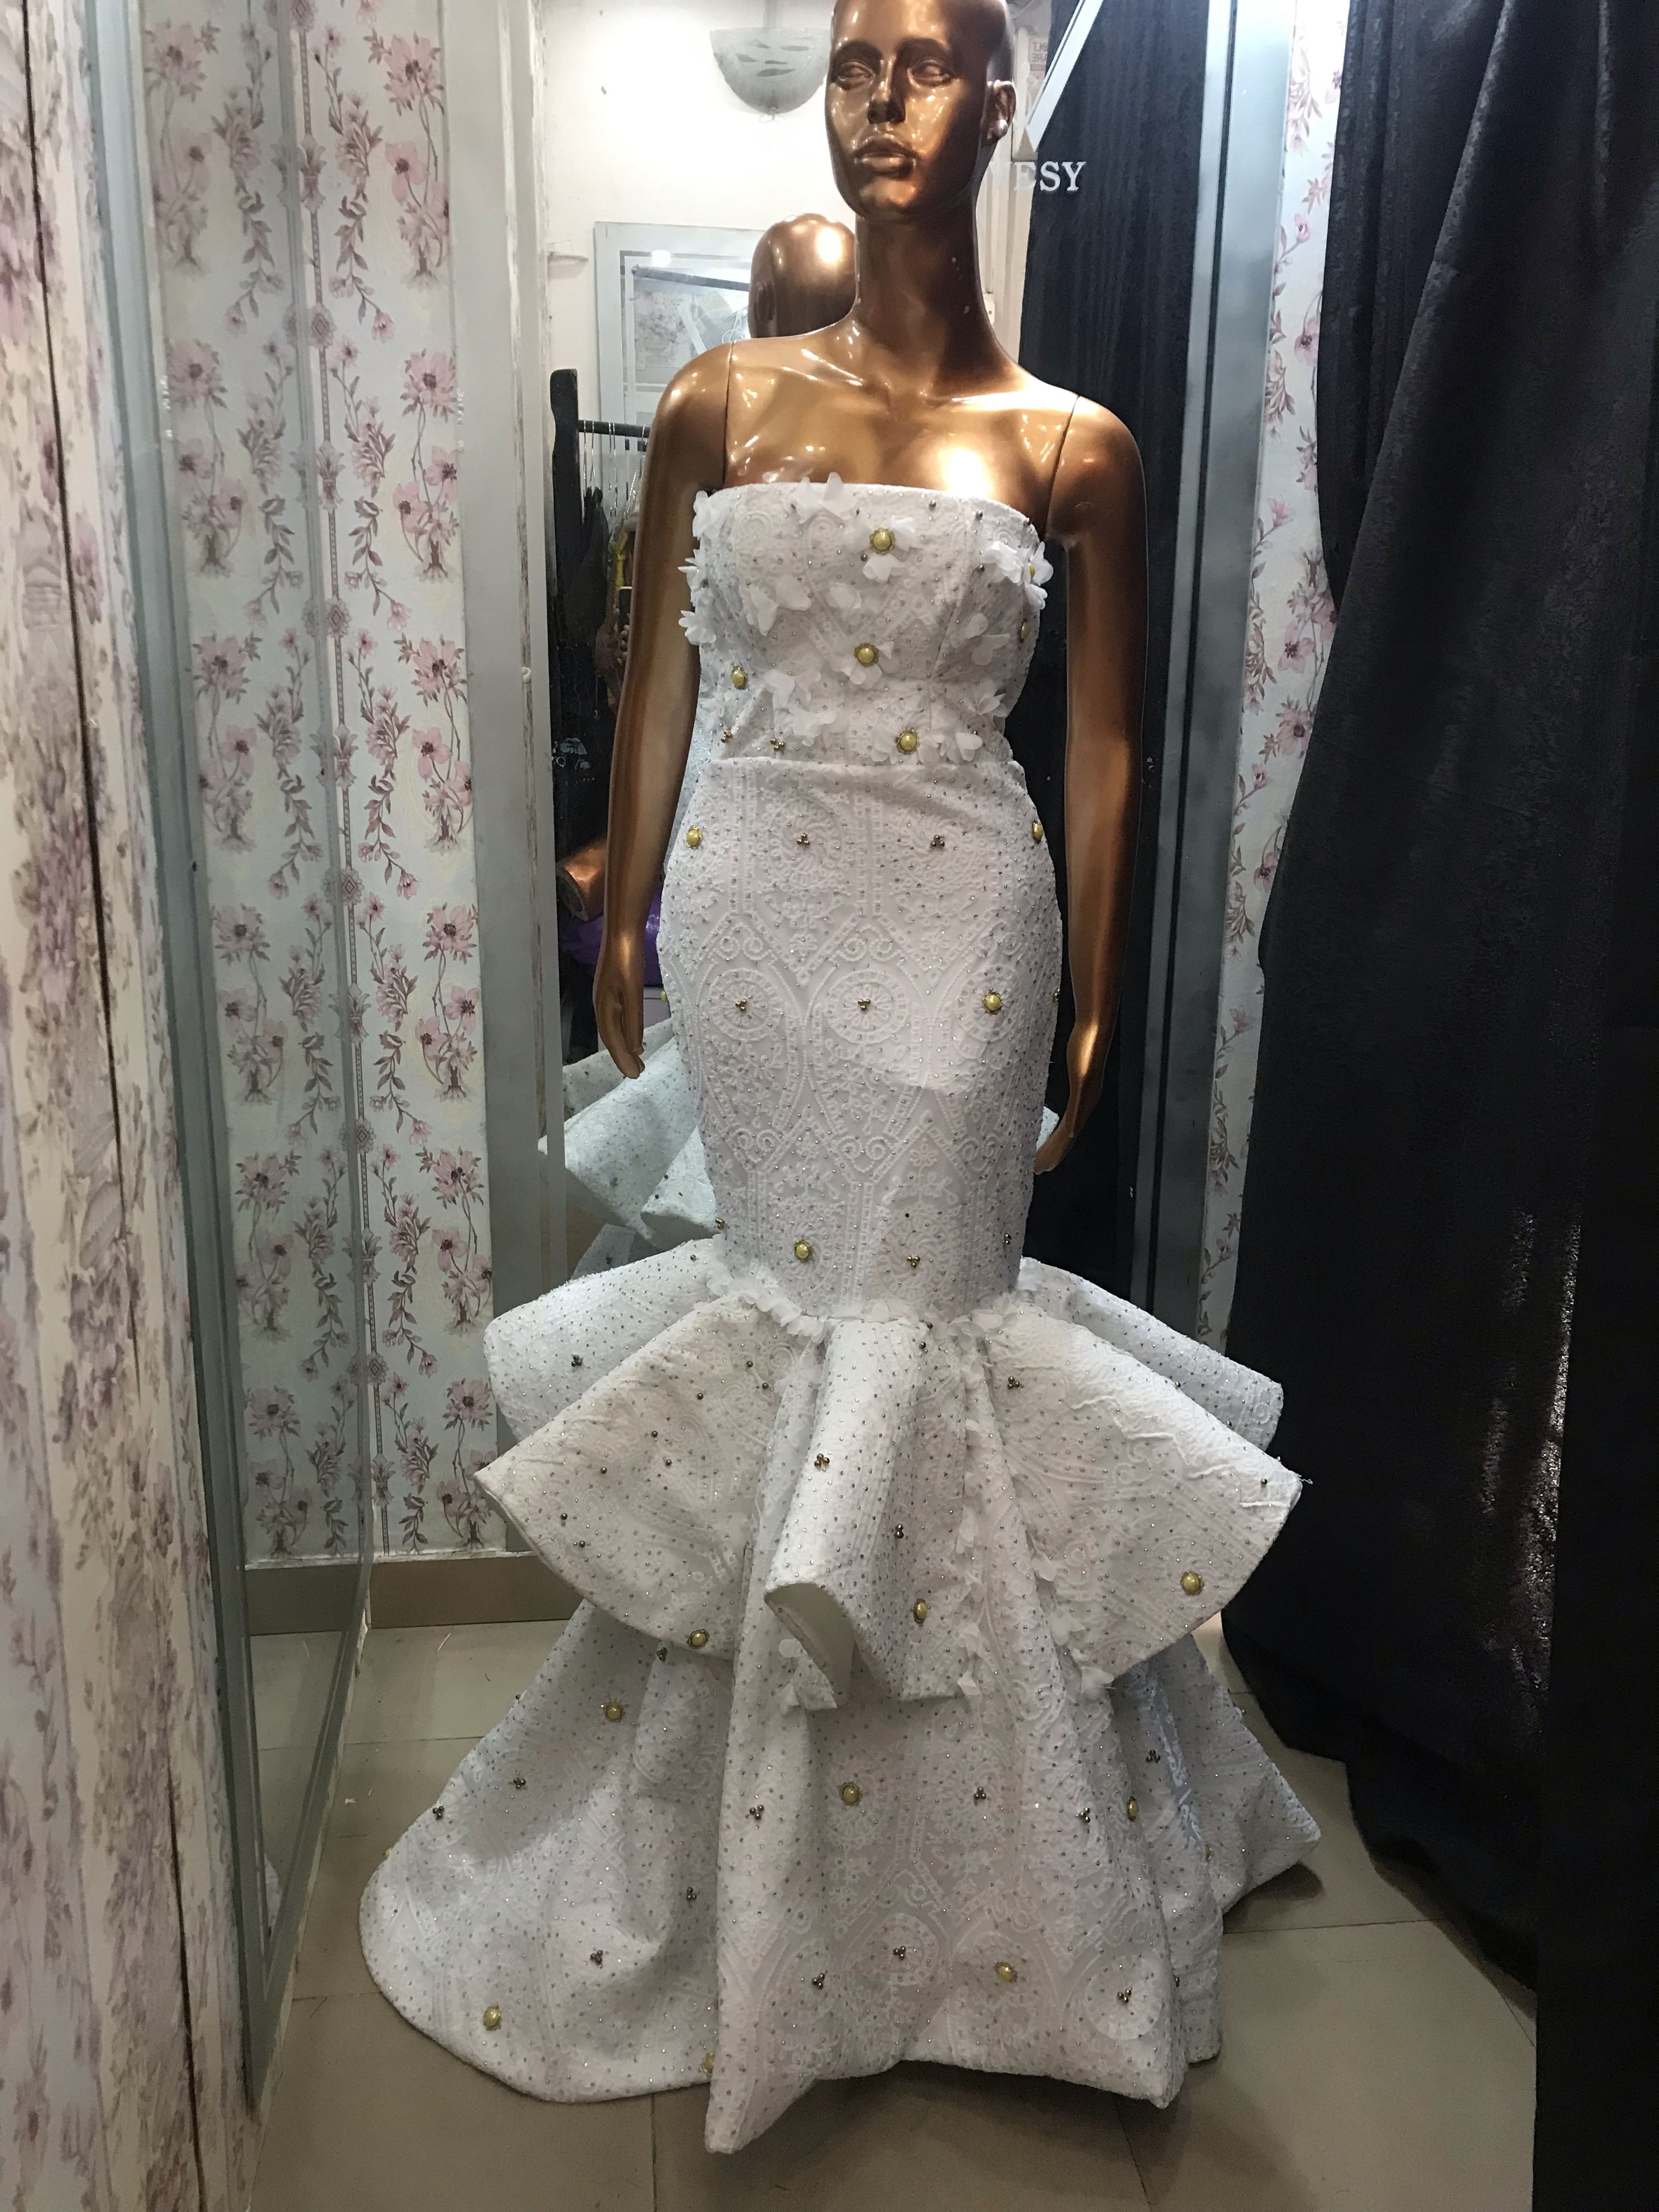 White Awesomeness Reception Dress Idea Traditional Outfit For An Edo Bride In Nigeria Wedding Reception Dress Reception Dress Wedding Guest Suits [ 4032 x 3024 Pixel ]